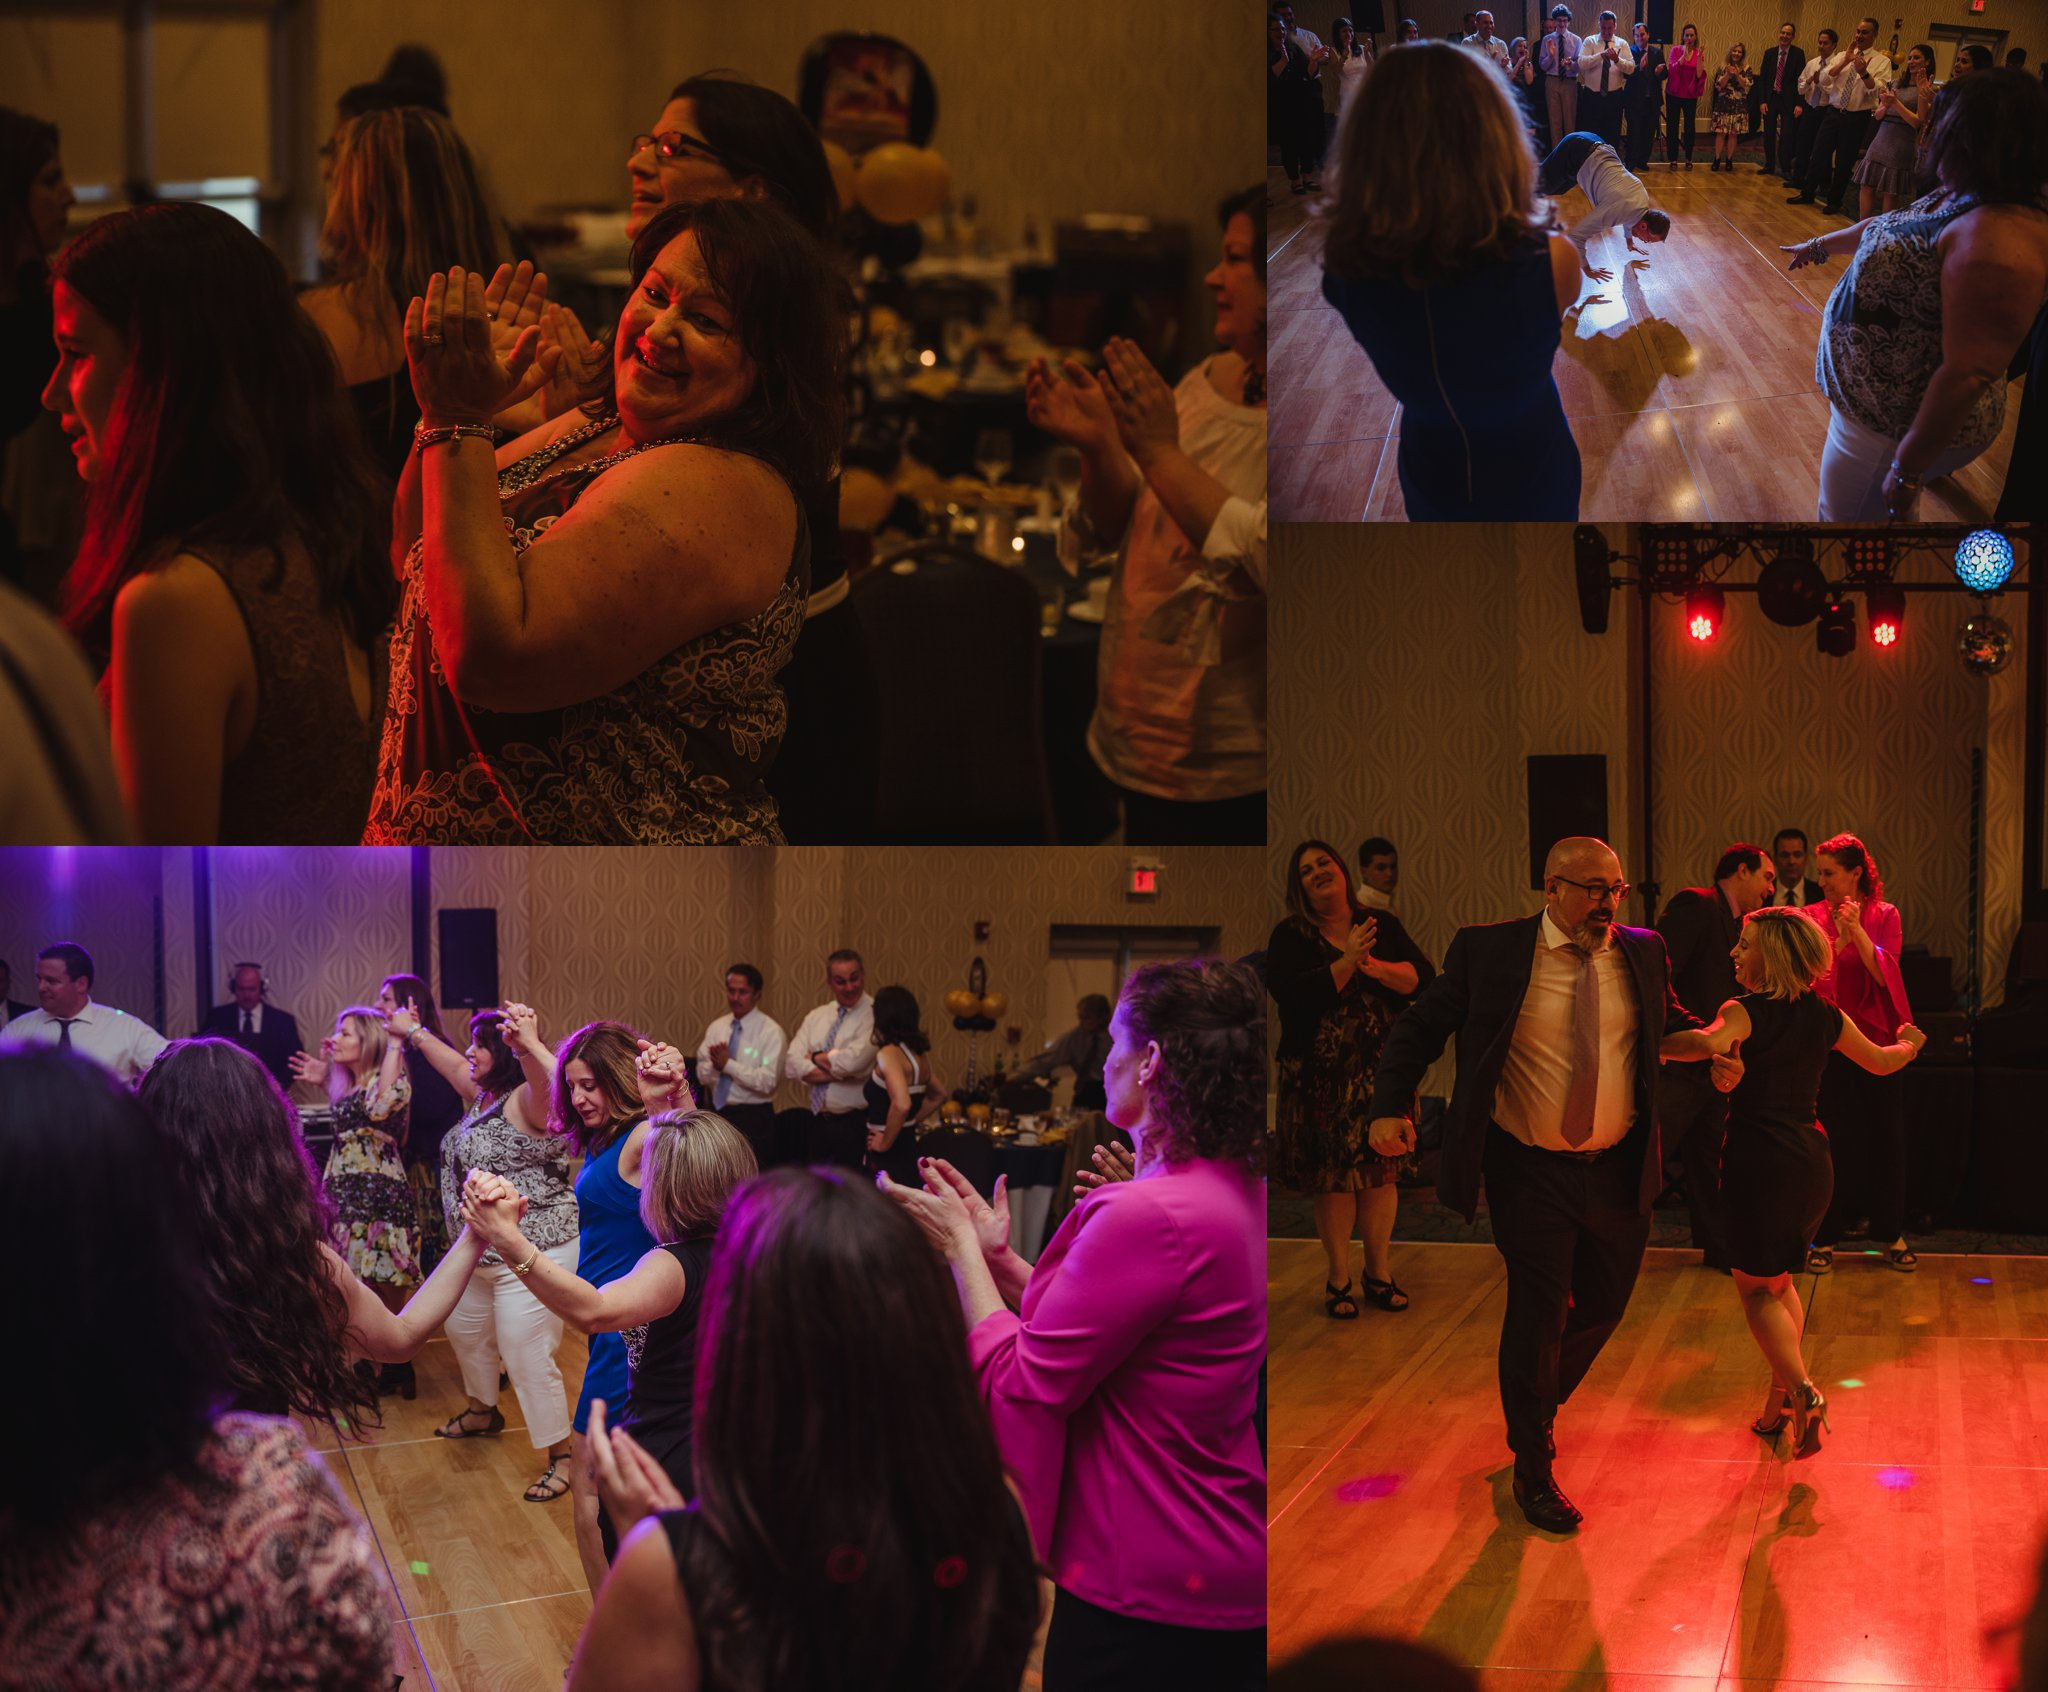 All the family and friends at Joel's mitzvah celebration party danced the Hava Nagila at Embassy Suites in Raleigh, North Carolina, images by Rose Trail Images.